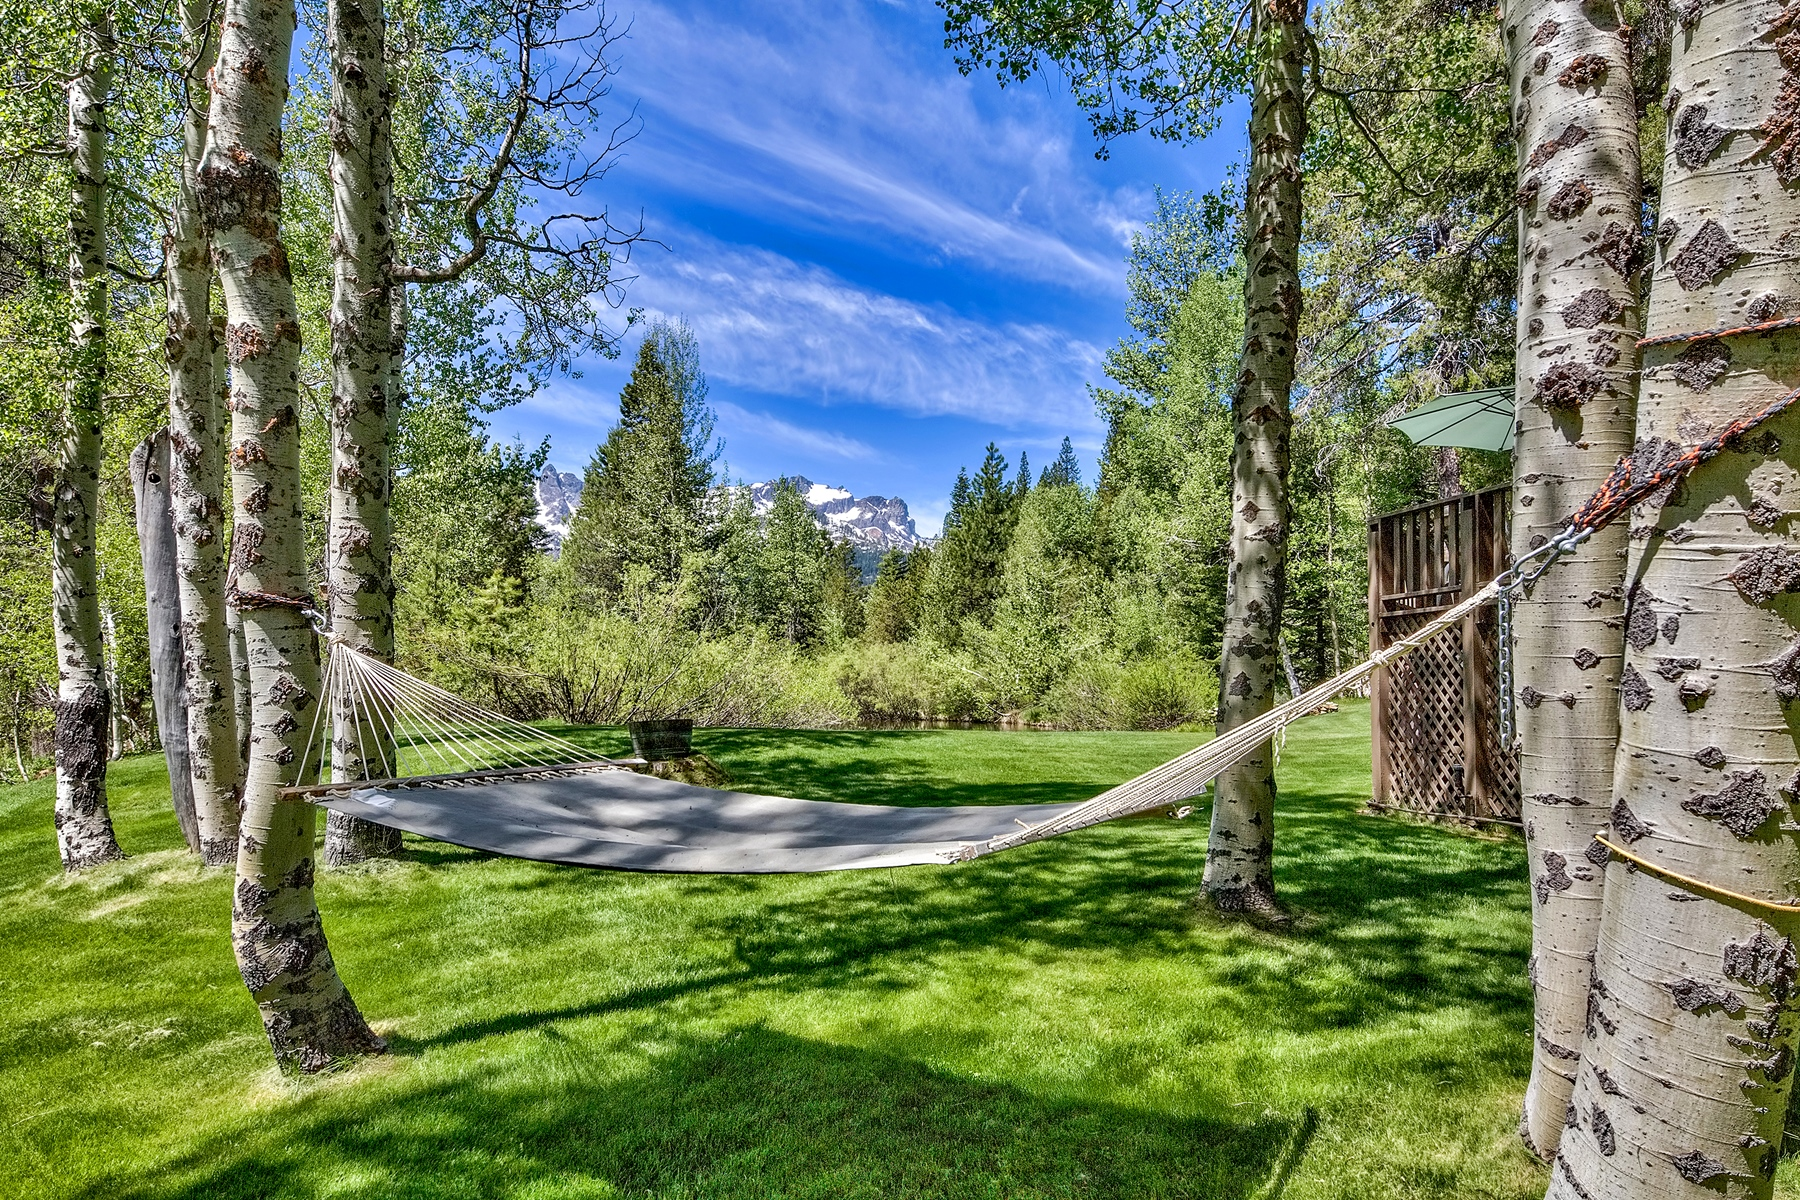 Additional photo for property listing at 100 Greene Rd, Sierra City, CA 961125 100 Greene Rd Sierra City, California 96125 Estados Unidos